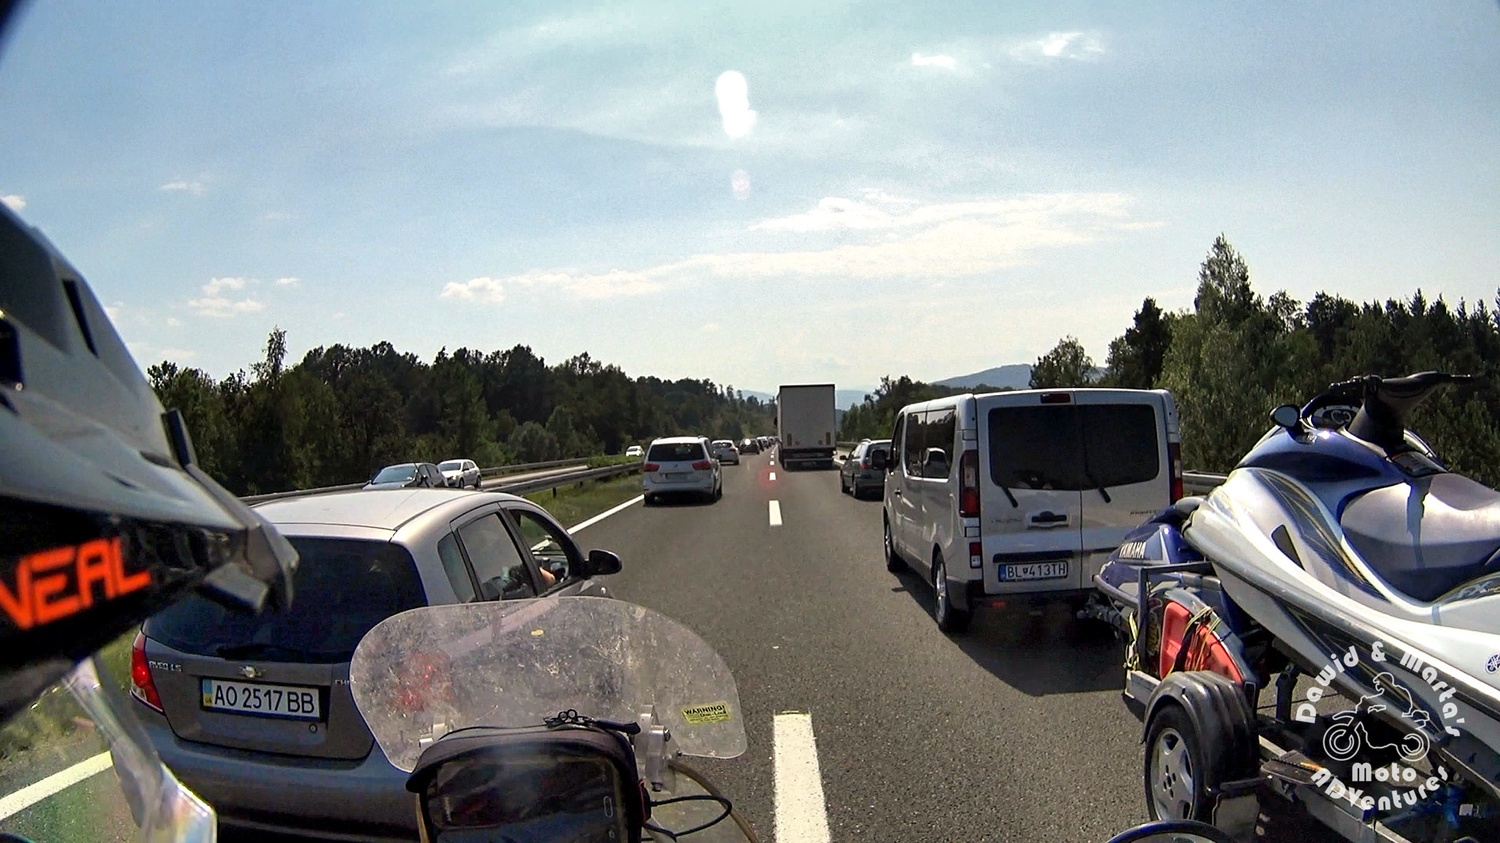 Traffic jam in the middle of nowhere, Croatia E65 road